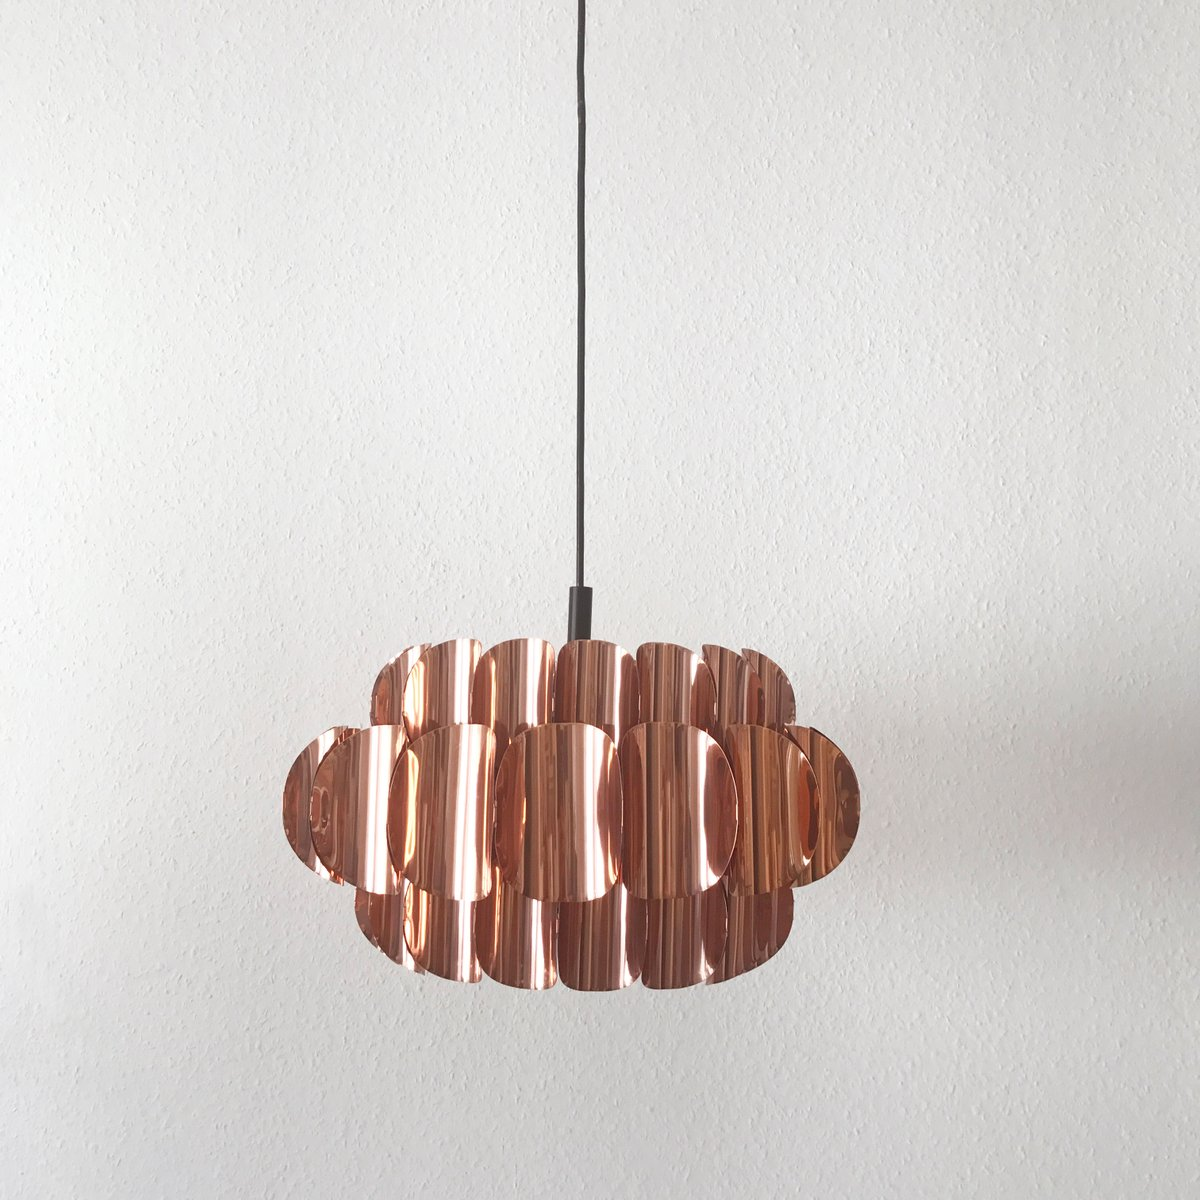 Lampe Suspension Cuivre Lampe Suspension Cuivre